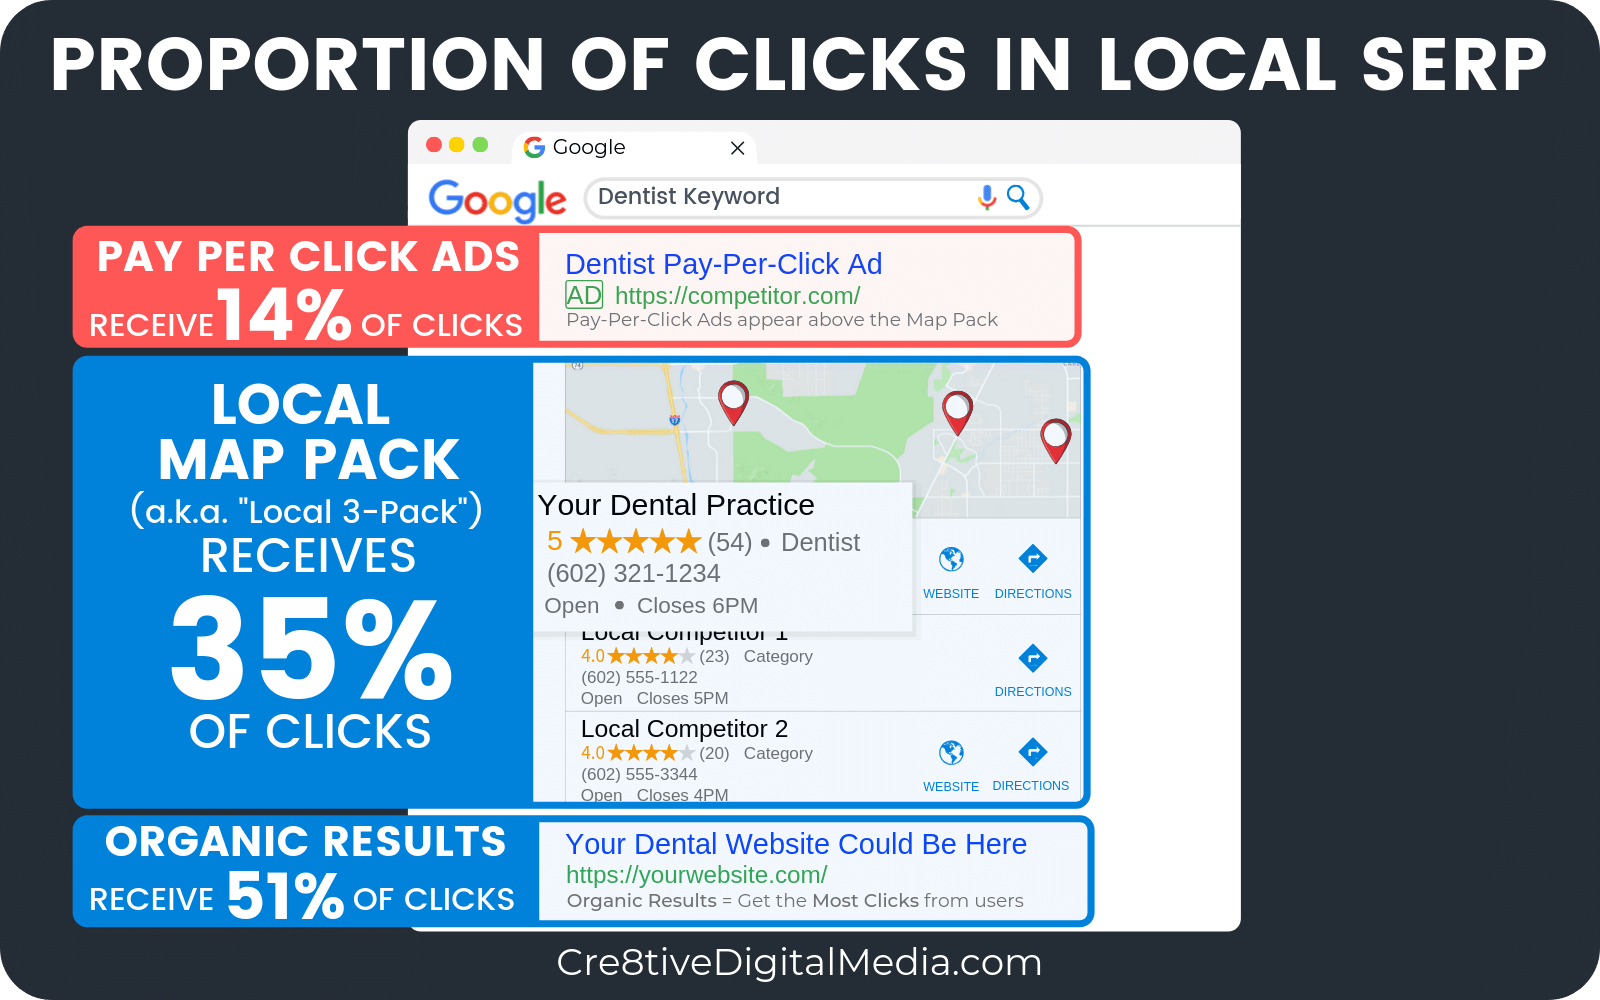 Proportion of clicks in local SERP-14% to Ads and 86% to the Map Pack & Organic Results